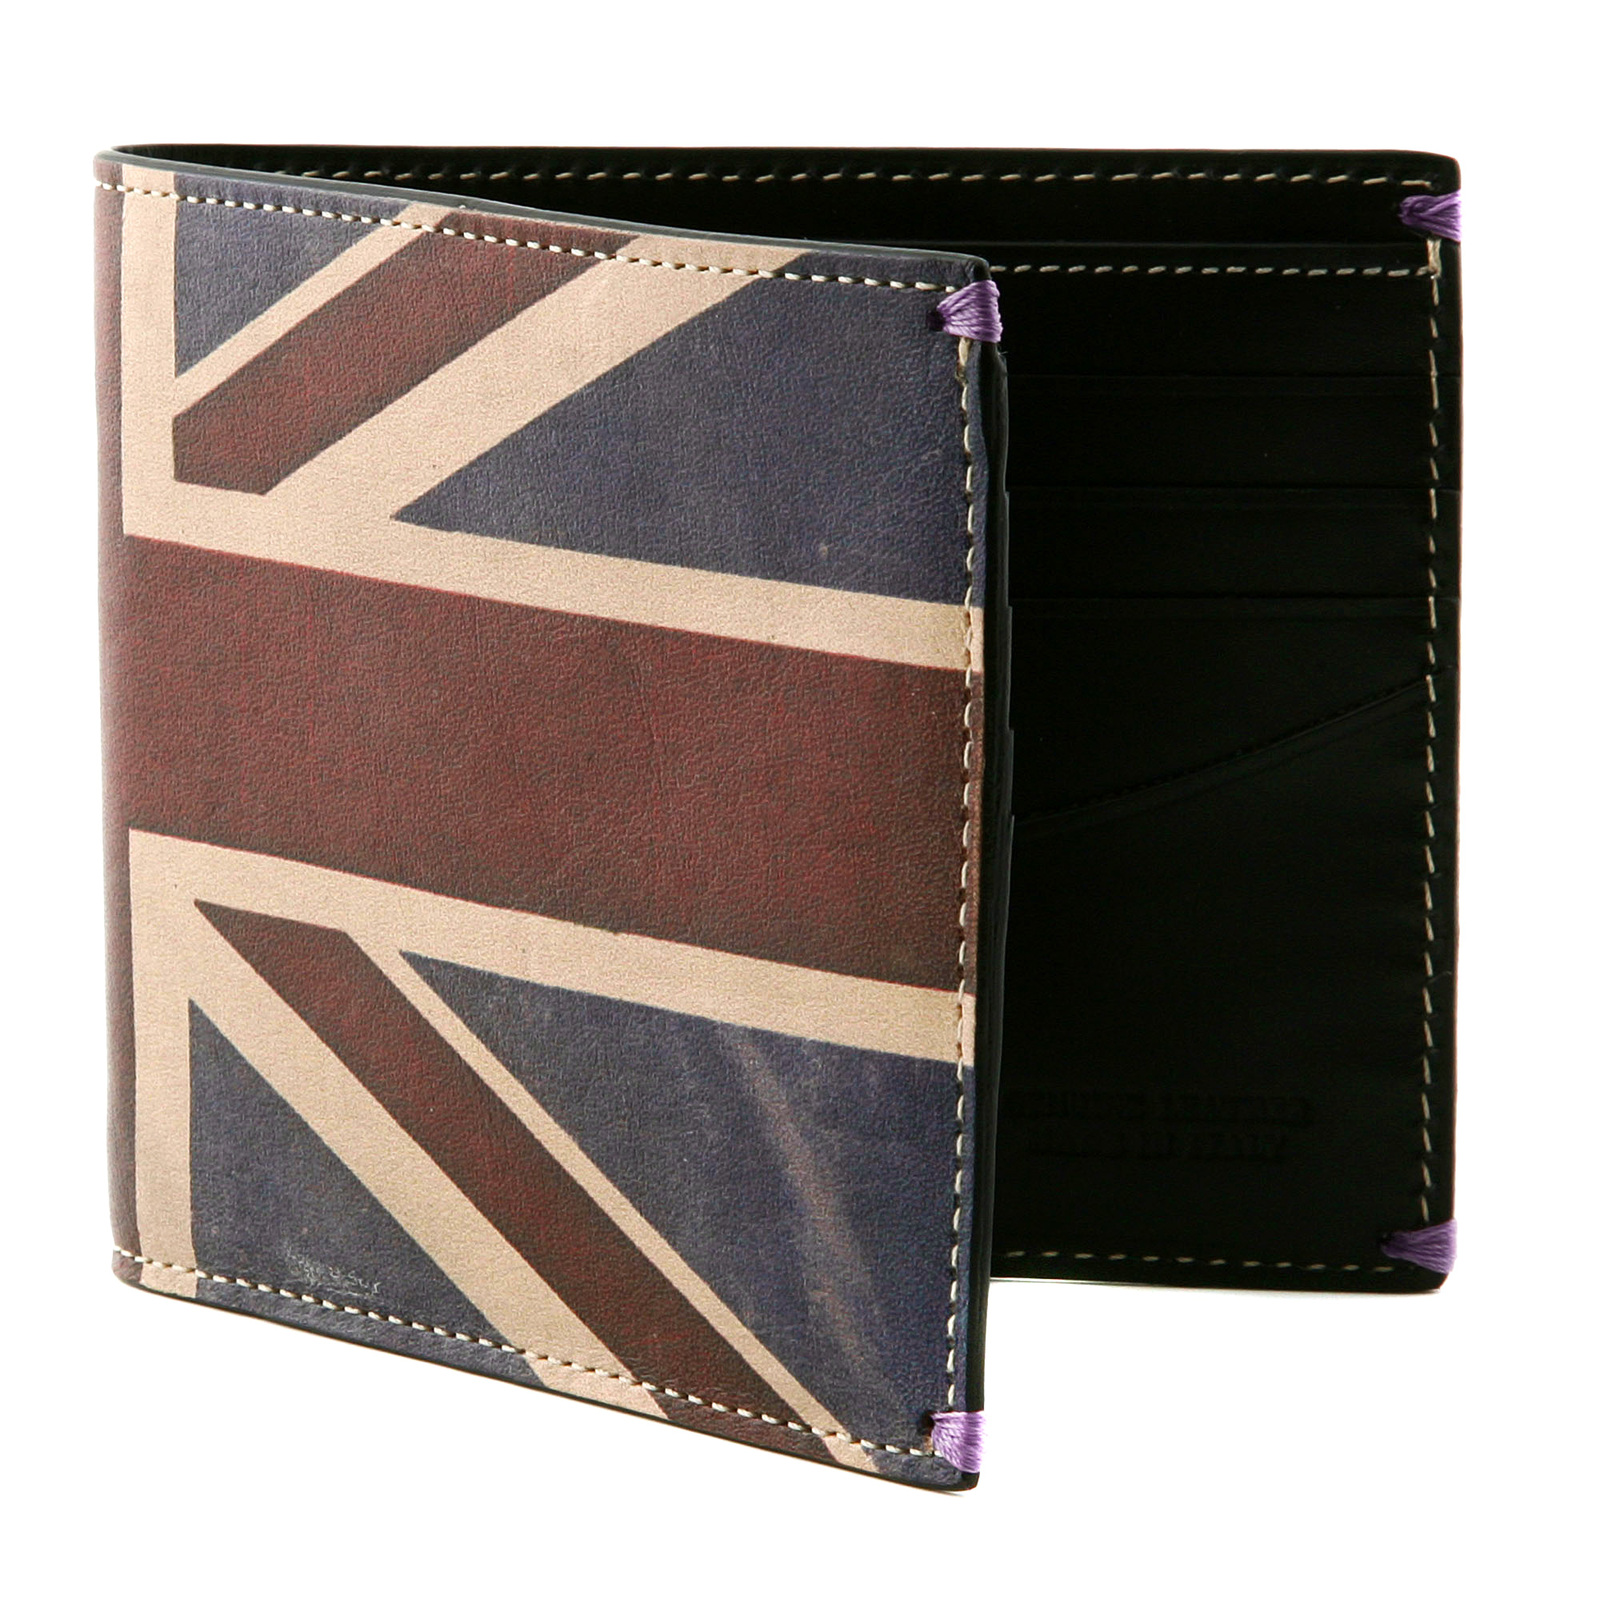 2c802d5768bf Paul Smith wallet leather bill fold wallet PS1102 at Togged Clothing